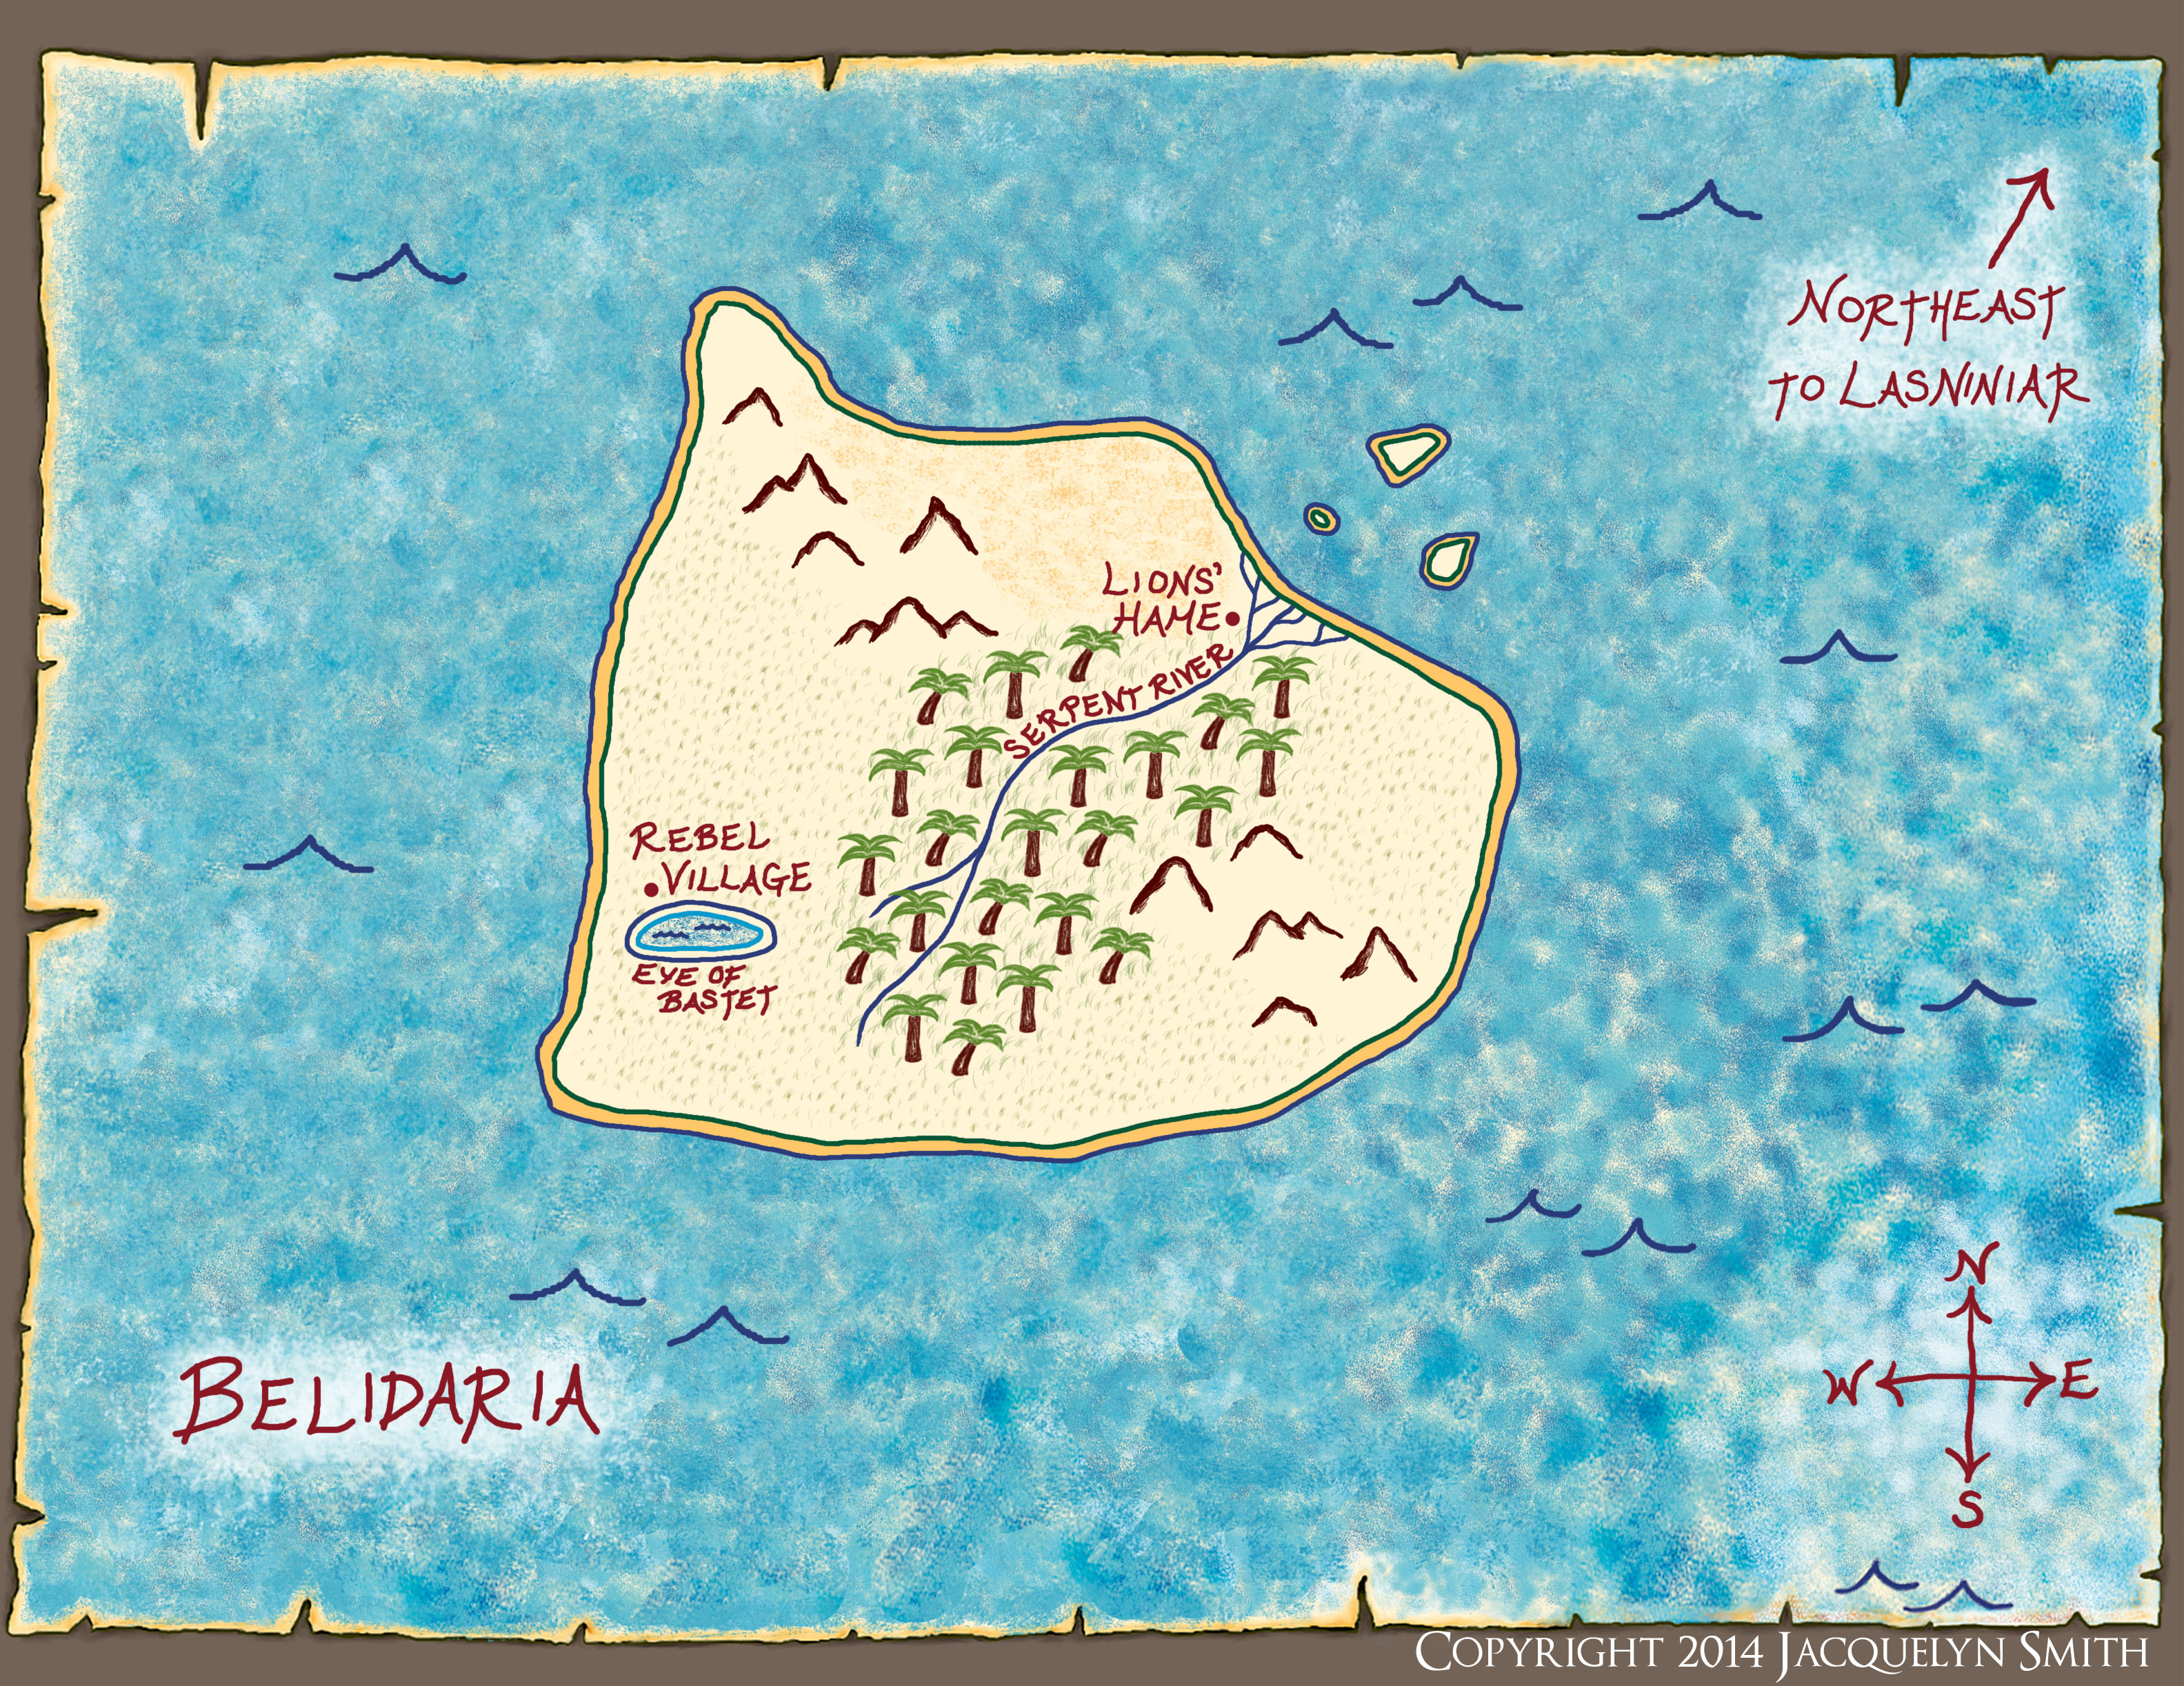 Belidaria map